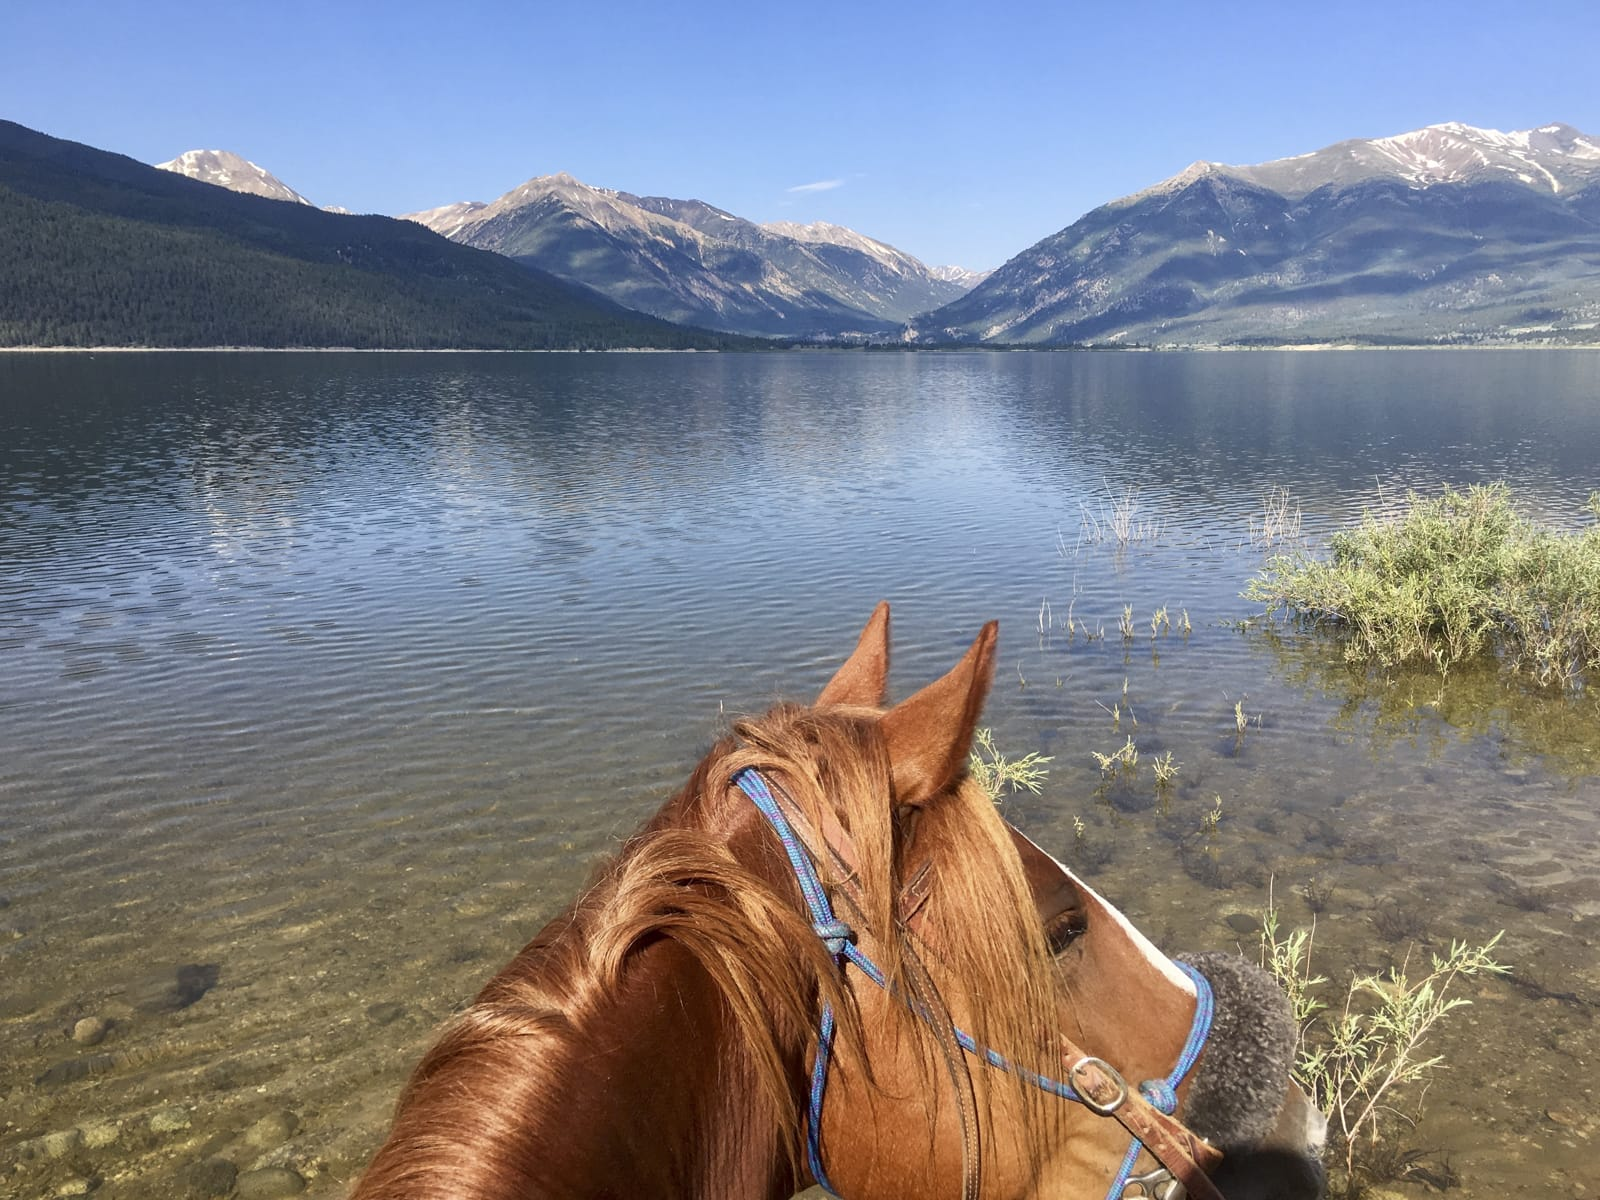 Horseback Riding - Colorado Trail Foundation